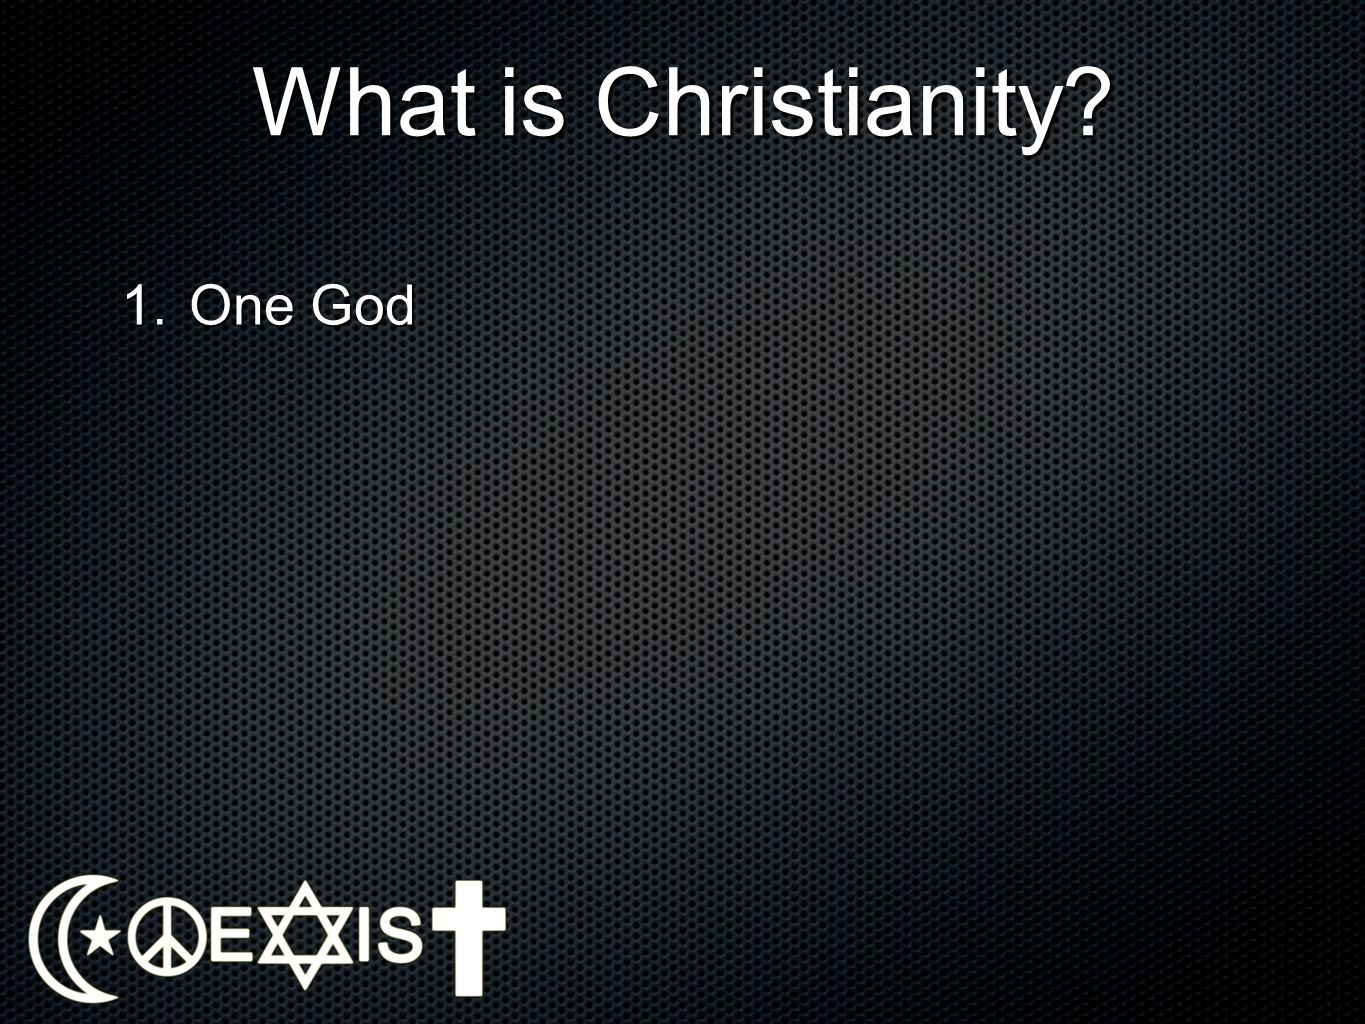 What is Christianity? Hear, O Israel: The Lord our God, the Lord is one. Deuteronomy 6:4